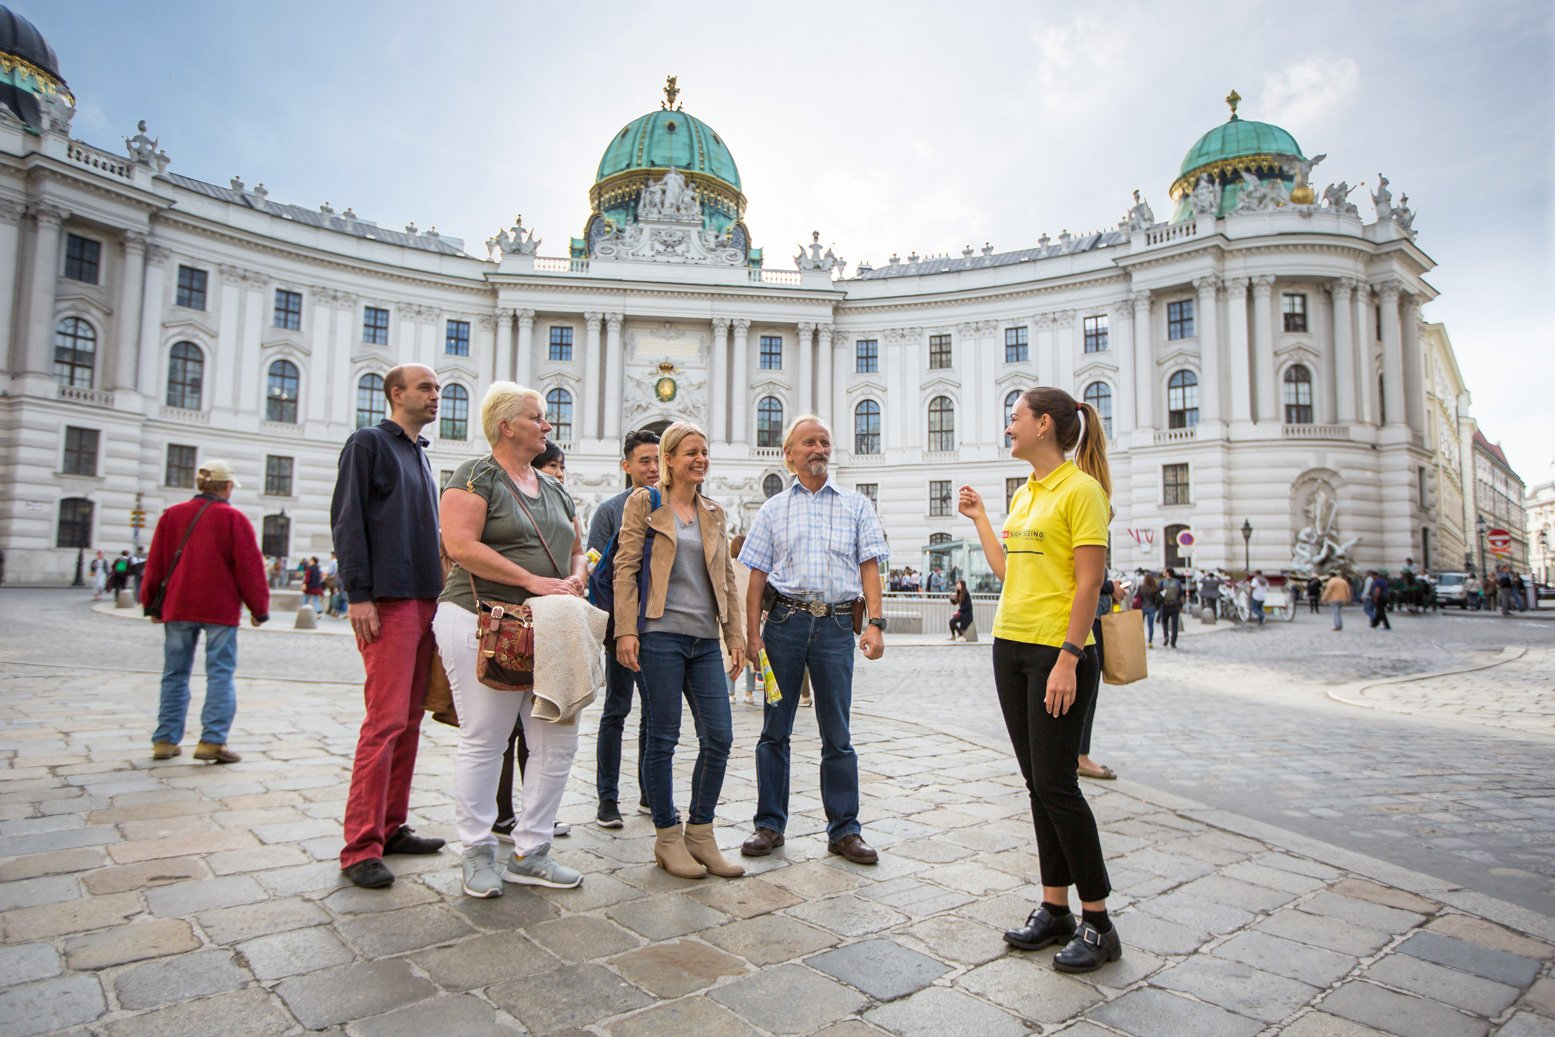 18_Walking-Tour-(c)-VIENNA-SIGHTSEEING-TOURS_Maximilian-Rosenberger-(18).jpg